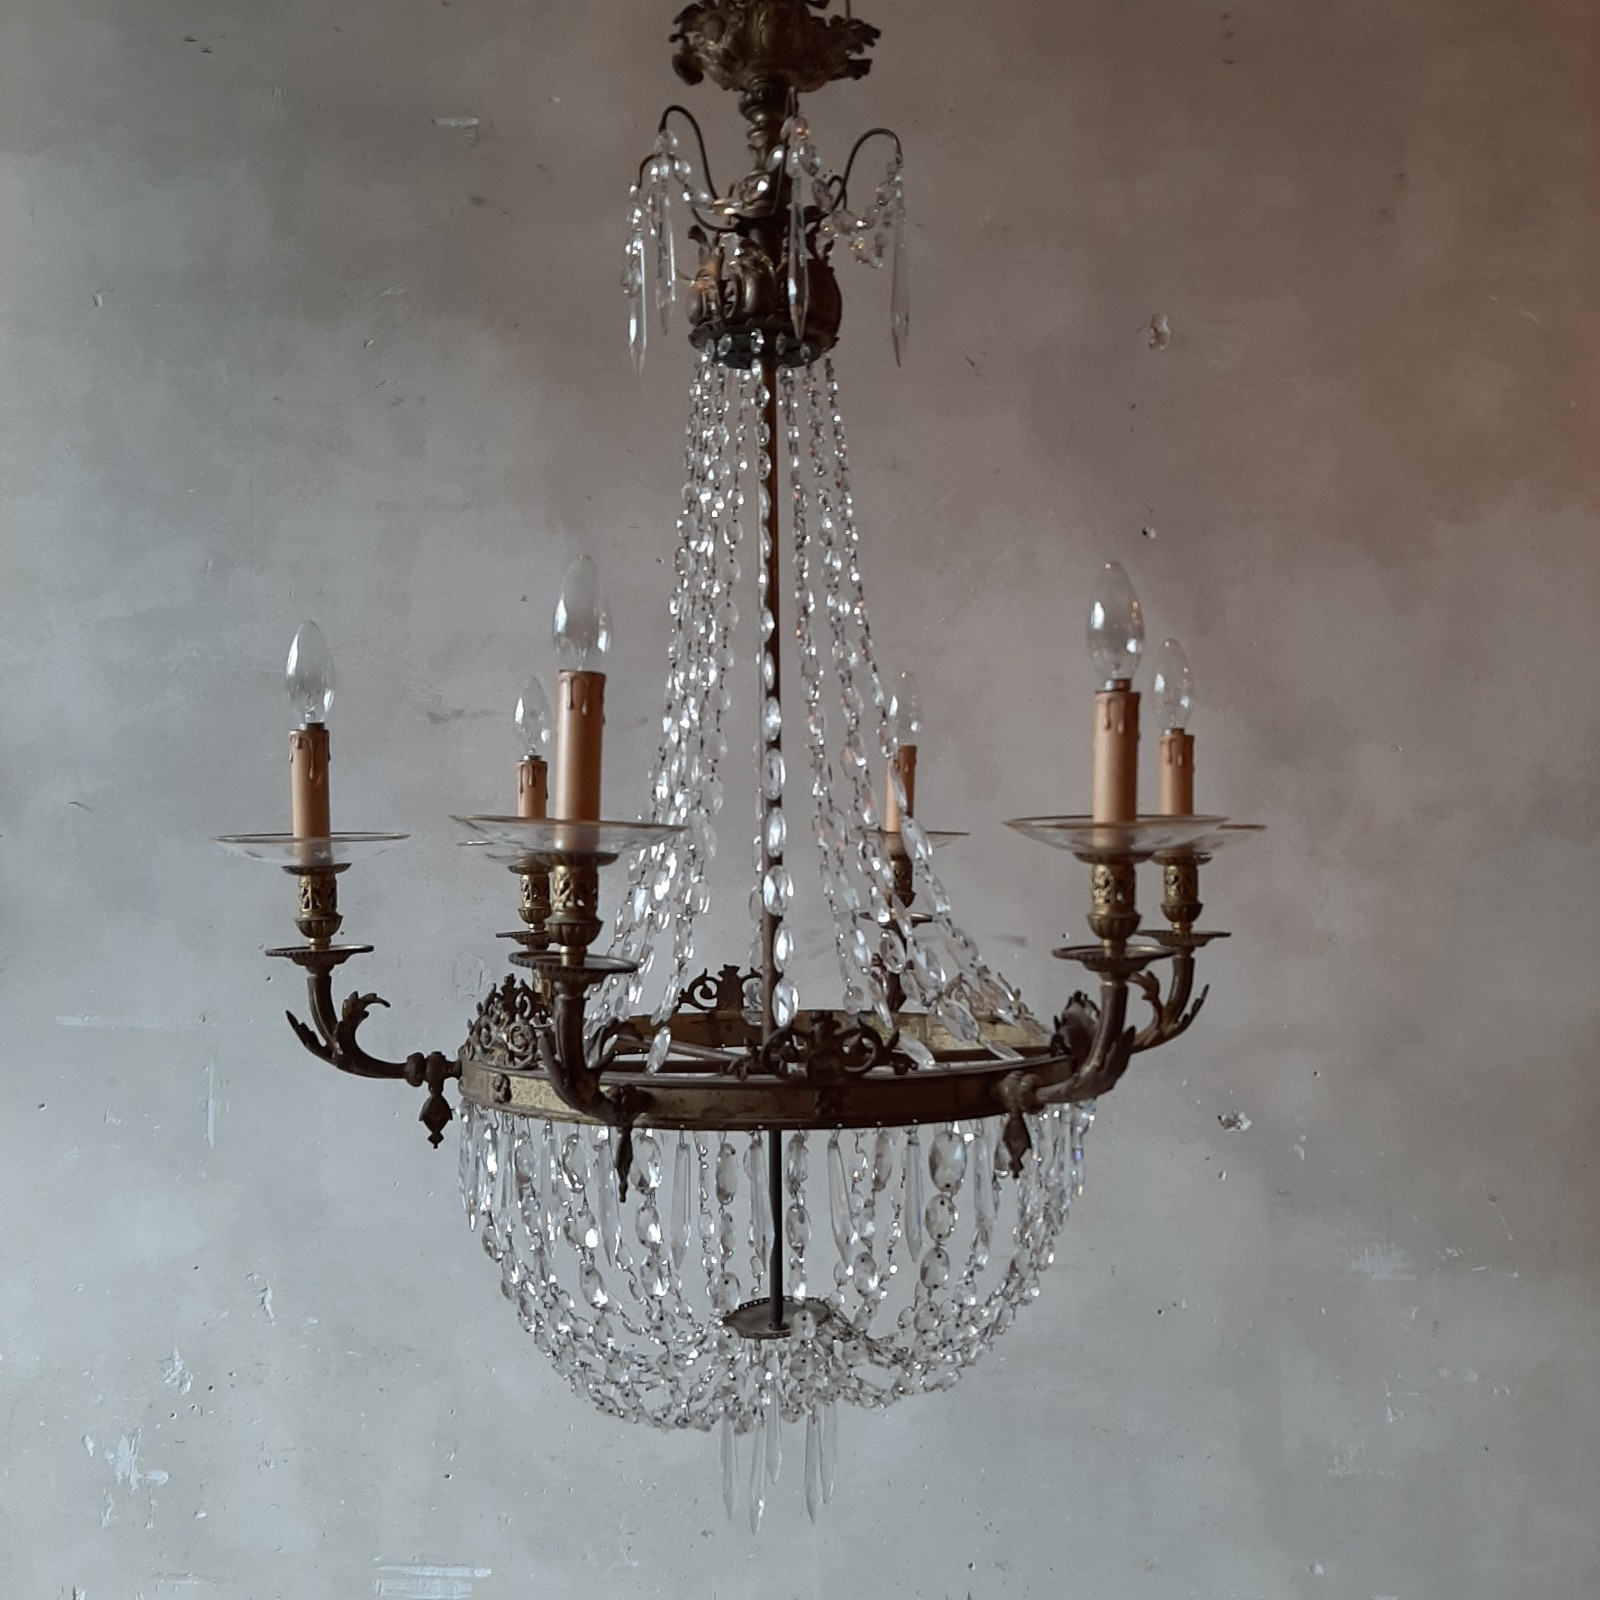 Early 19th century French chandelier in Empyre style